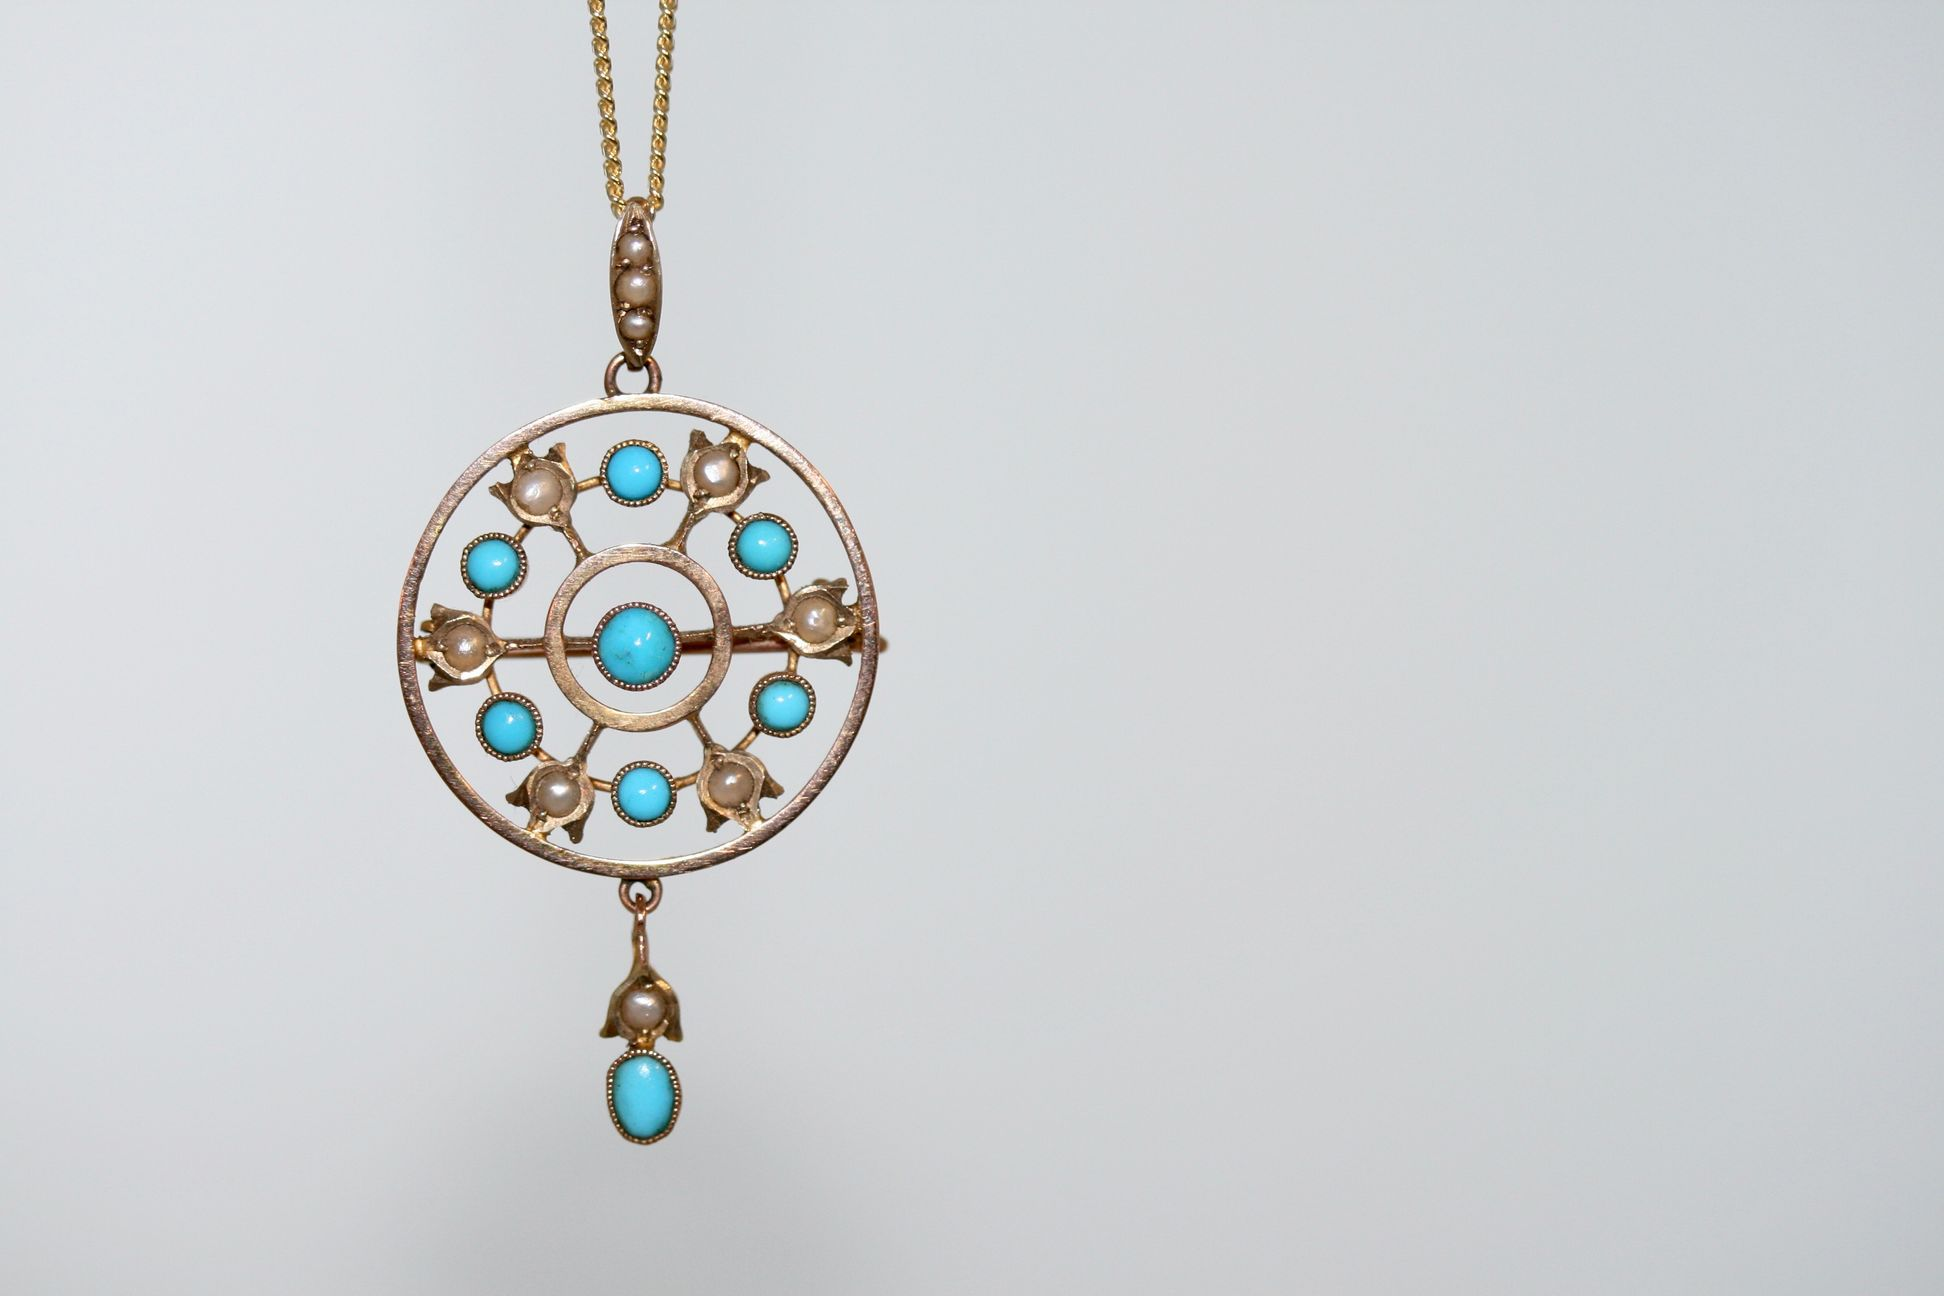 Edwardian 9ct Gold Turquoise And Pearl Pendant